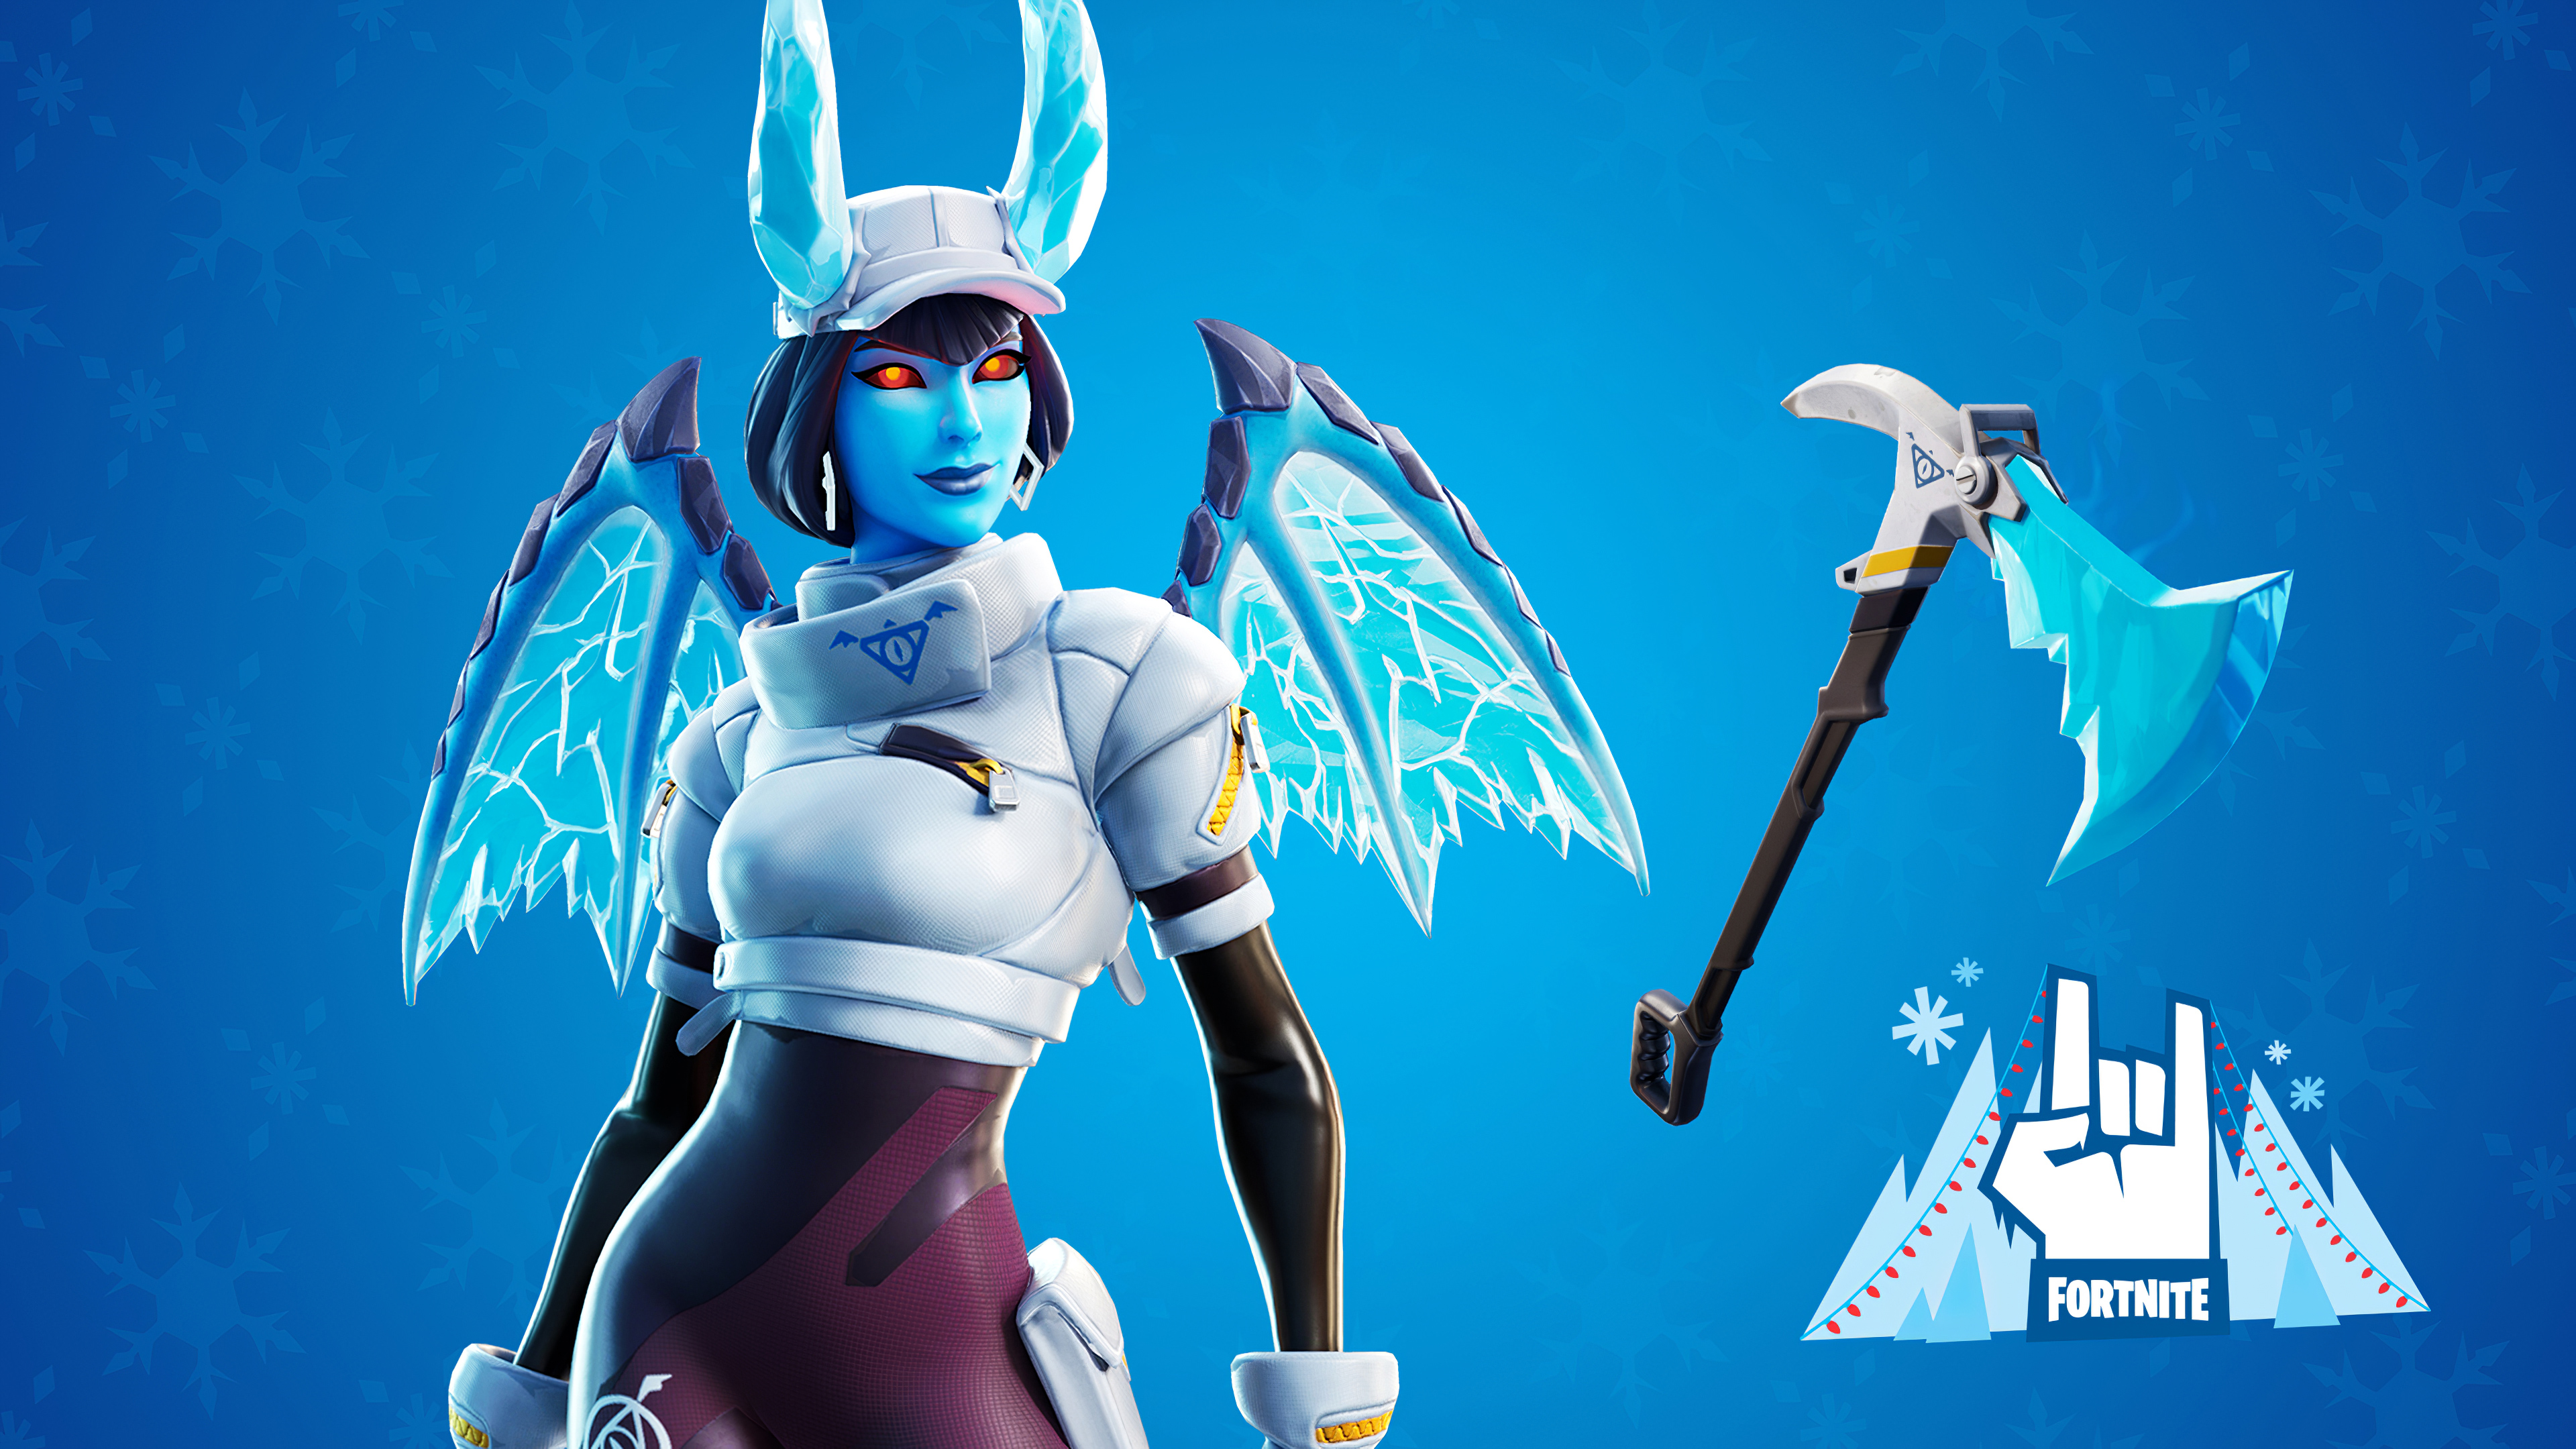 fortnite shiver outfit along with the frost blade pickaxe 1578854213 - Fortnite Shiver Outfit Along With The Frost Blade Pickaxe - Fortnite Shiver Outfit Along With The Frost Blade Pickaxe 4k wallpaper, Fortnite game wallpaper 4k